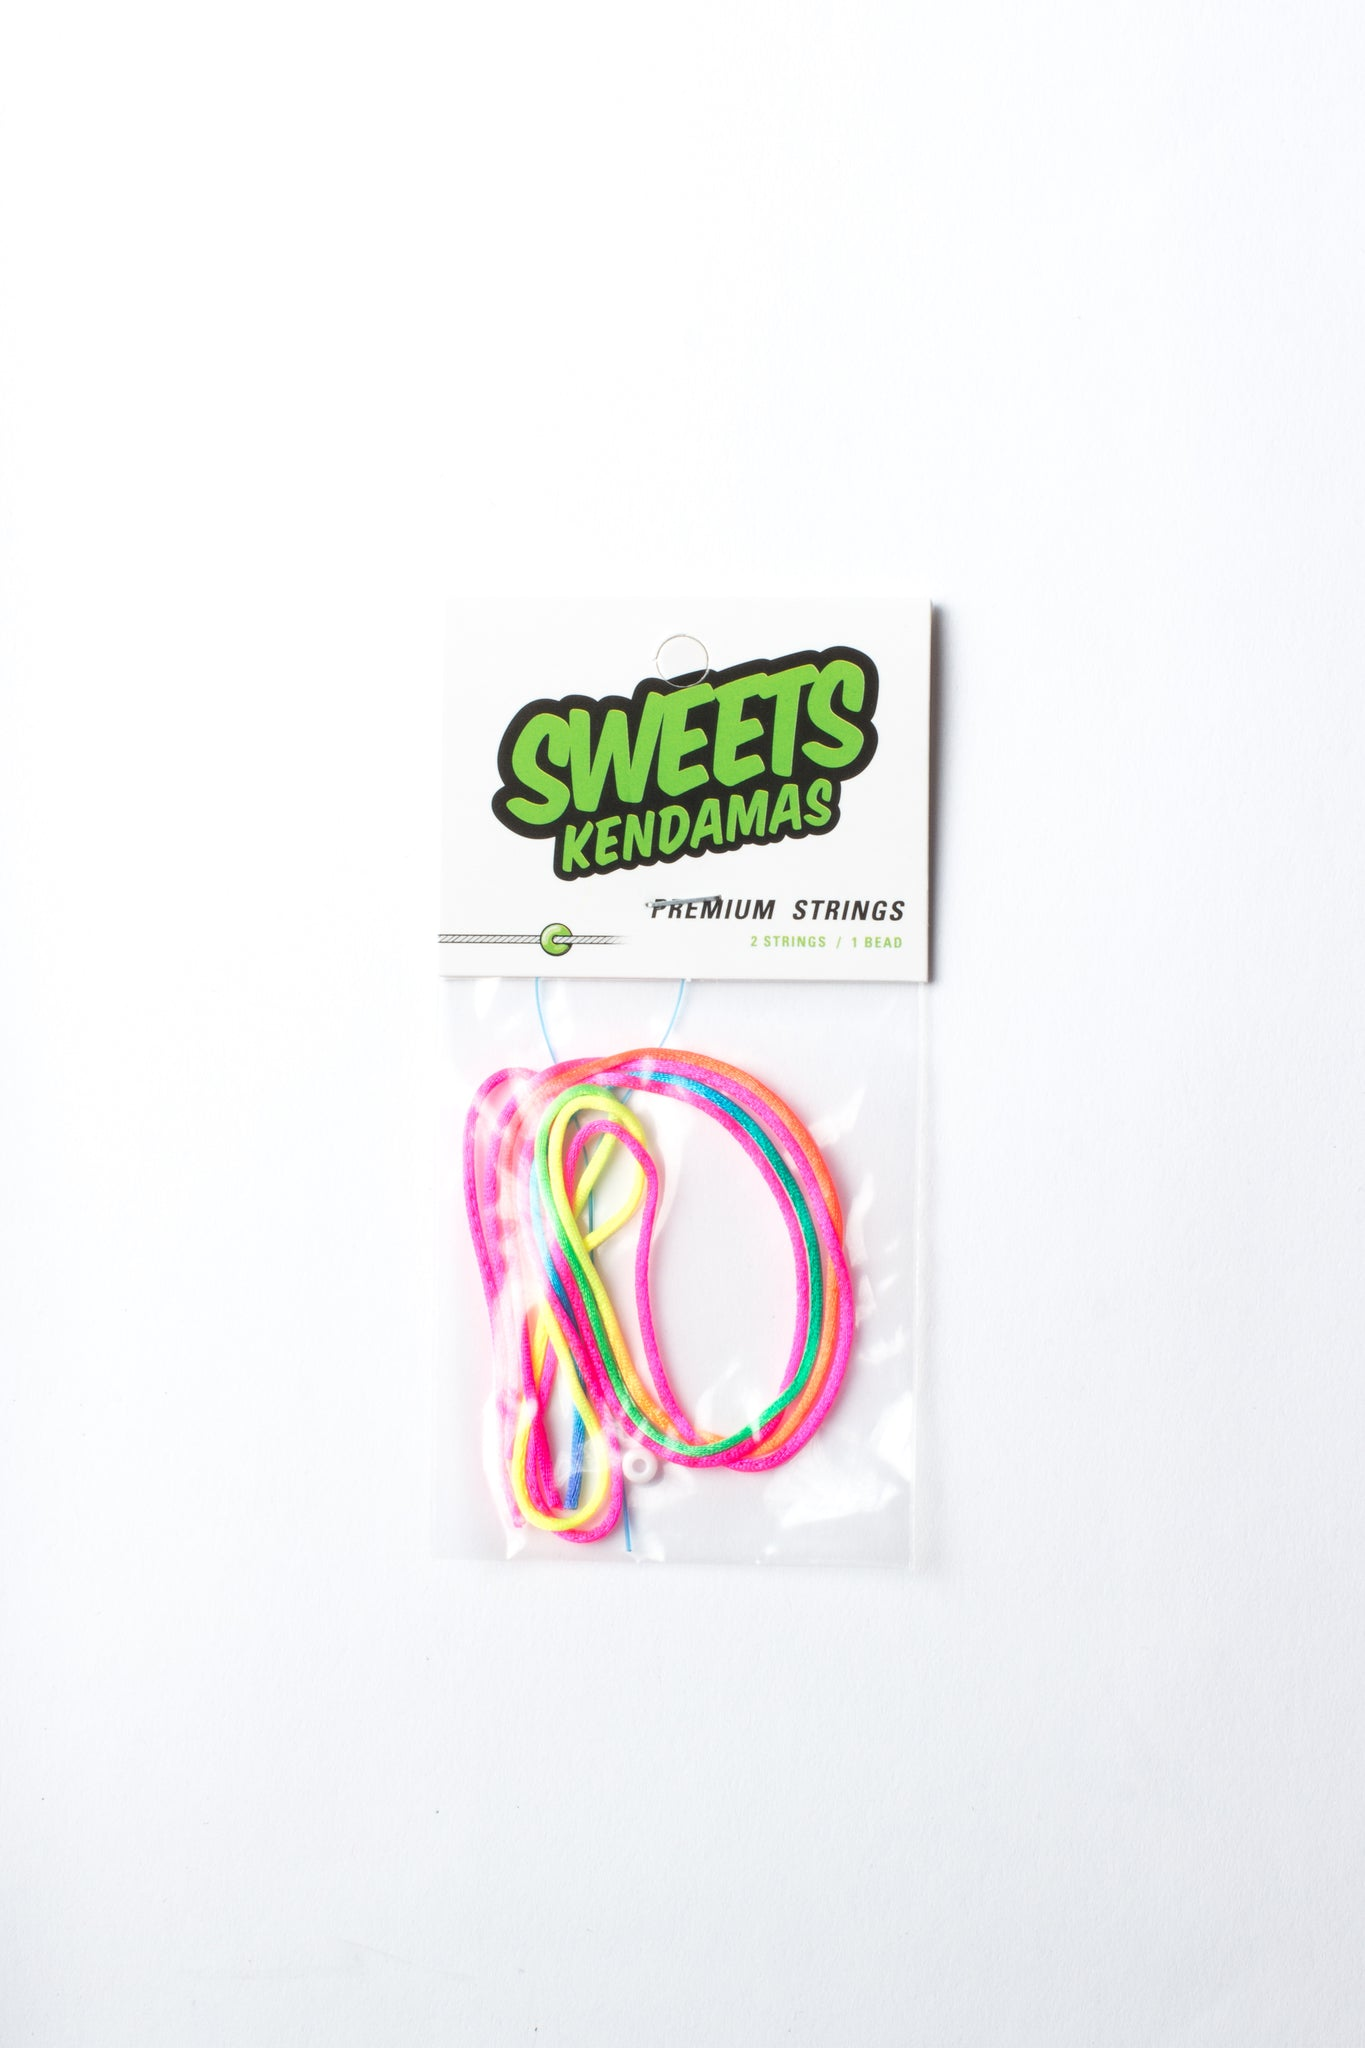 Sweets Premium String Pack (2 Packs) - Pink / Rainbow